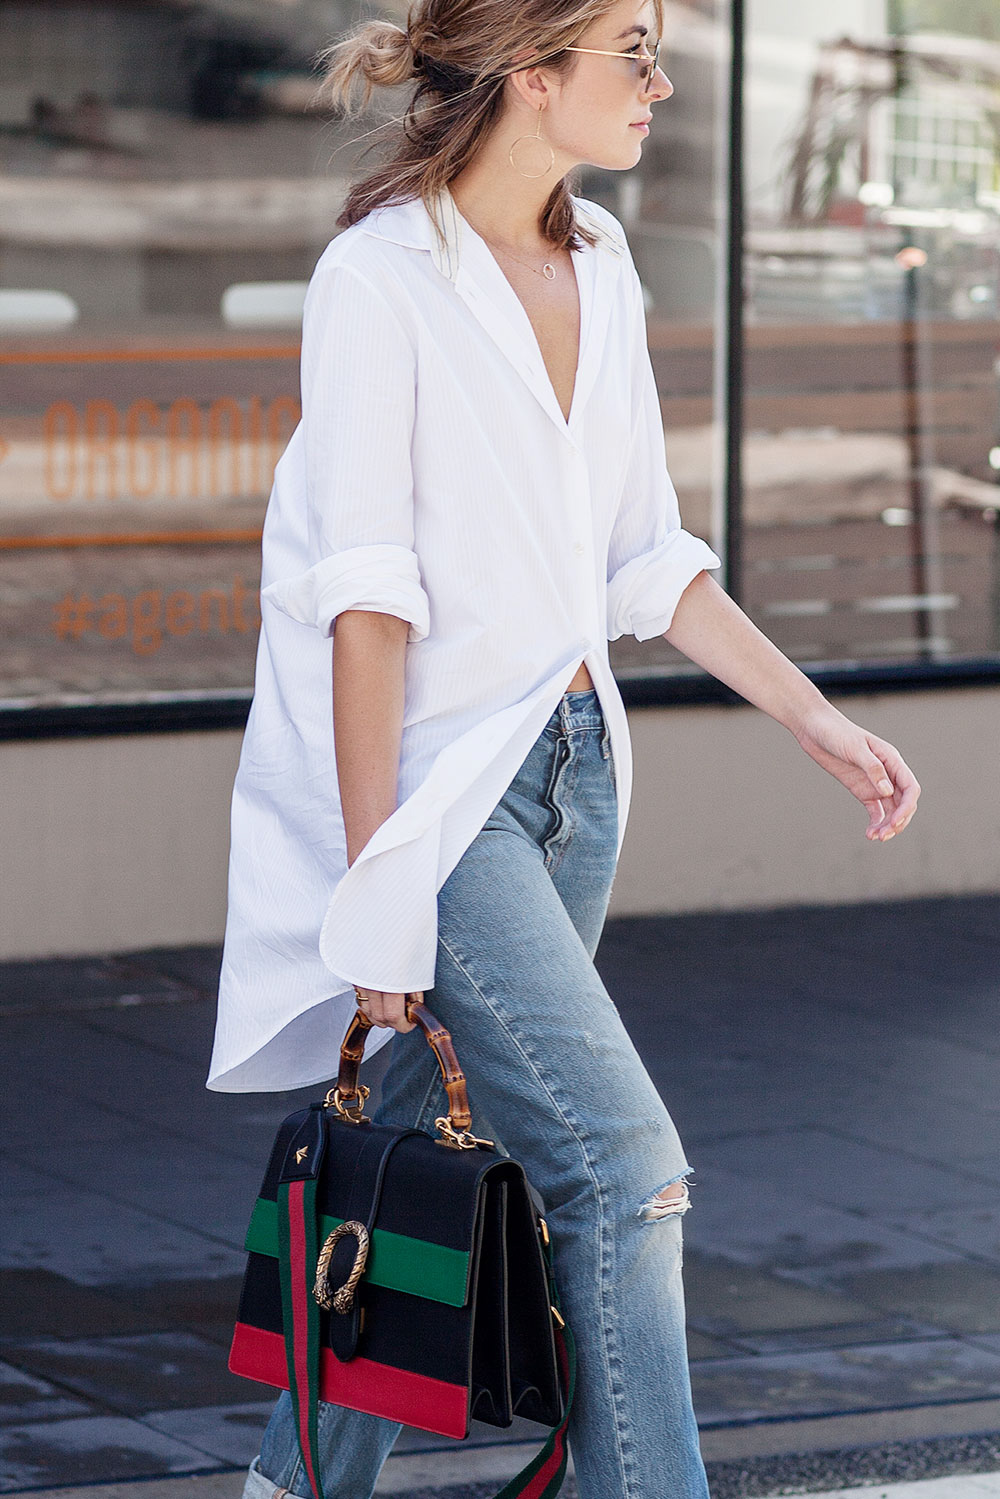 Steal Her Style: The Gucci Dream   The Daily Dose   Bloglovin\'